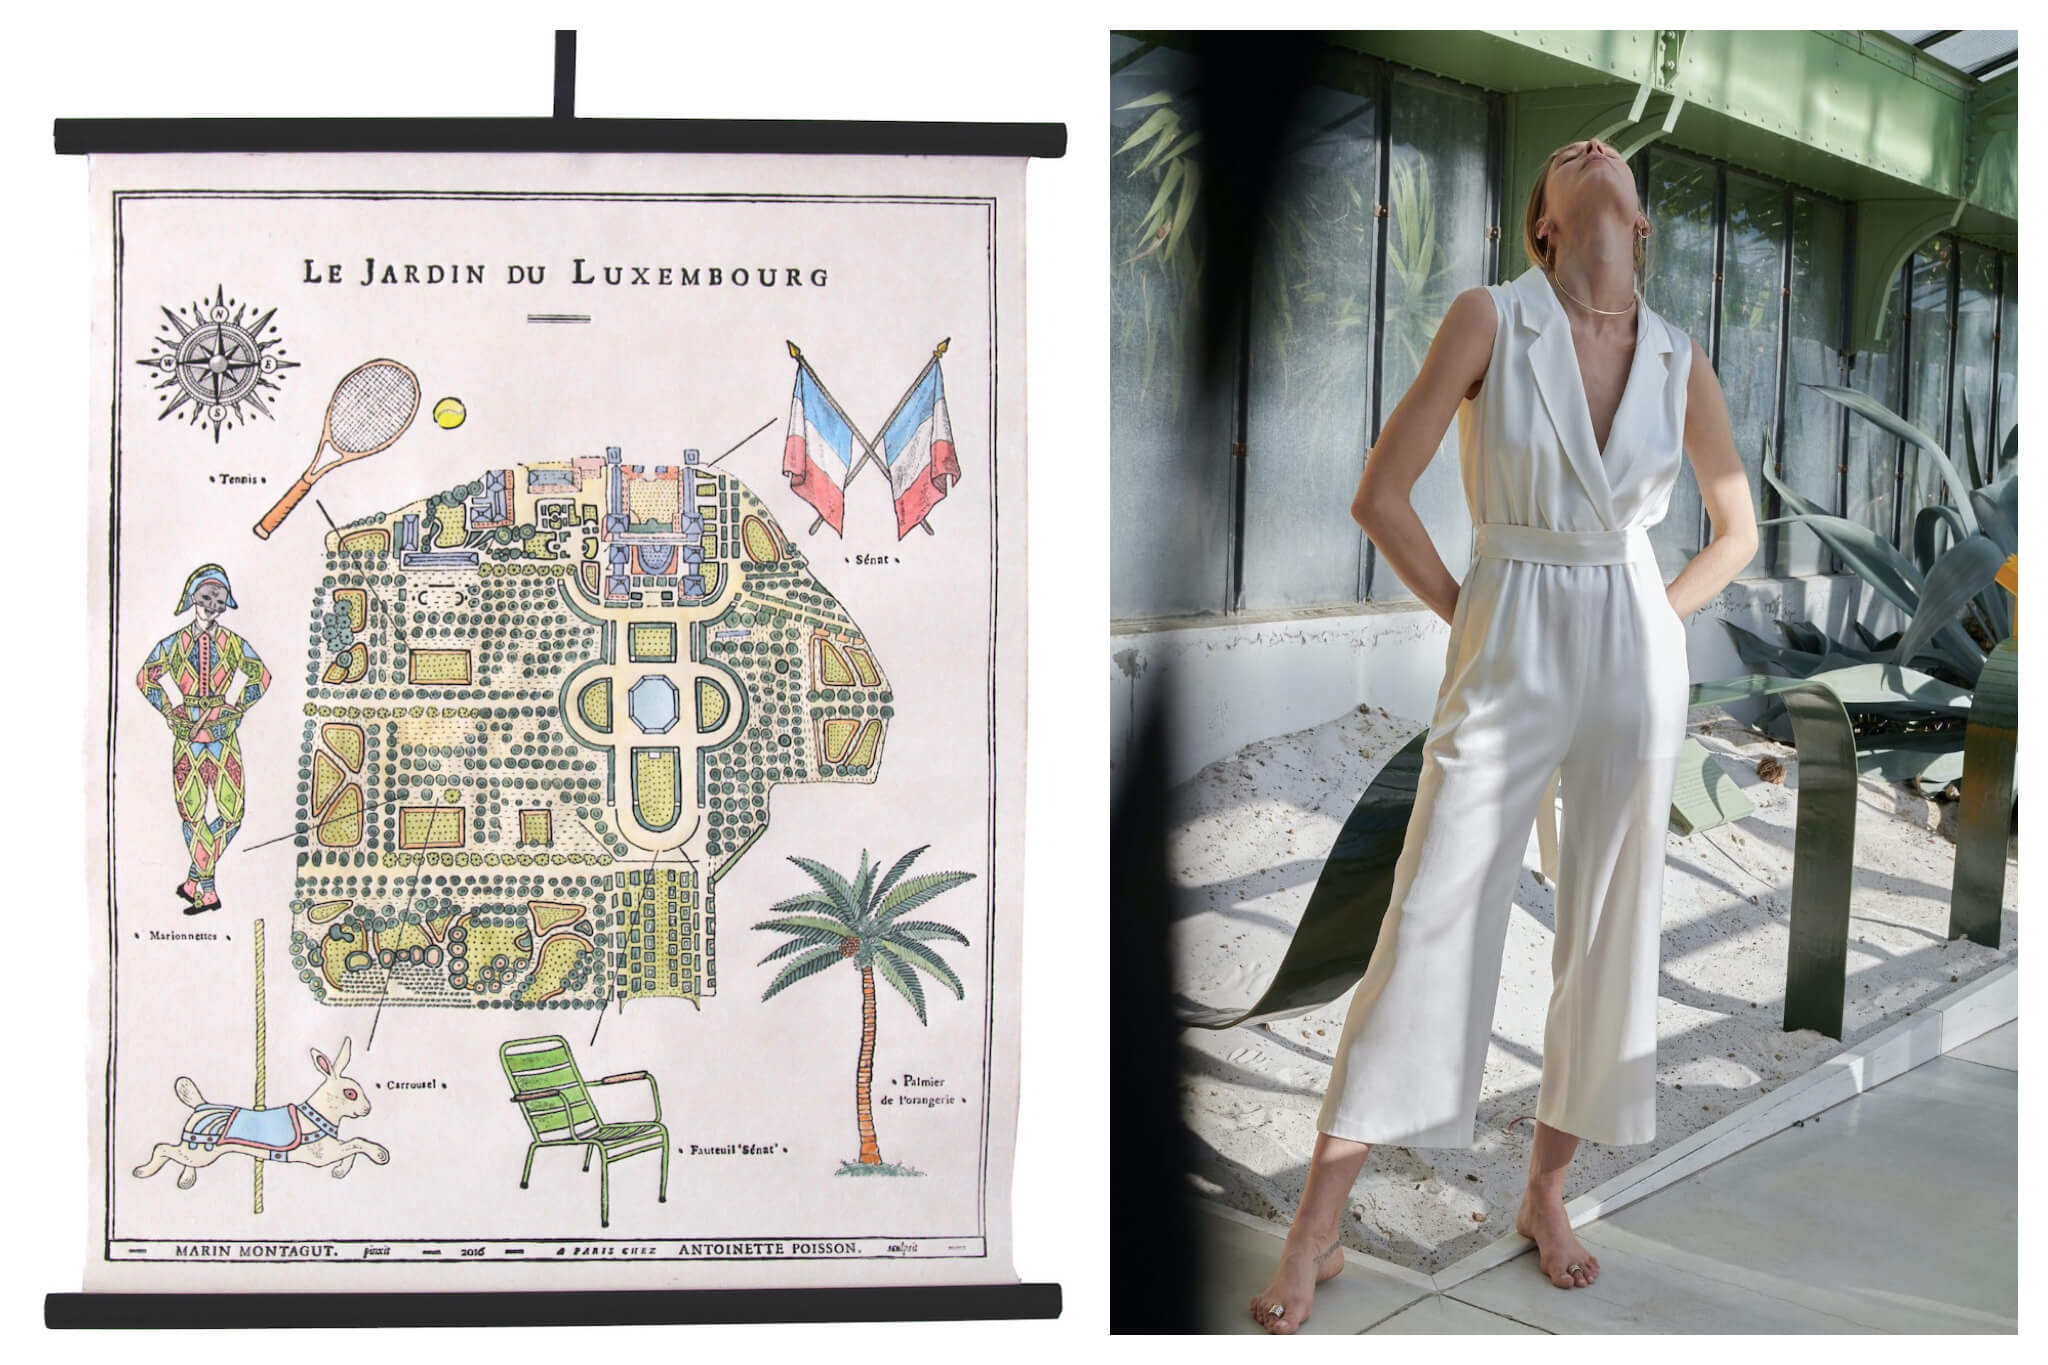 Left: A poster shows Paris related items, including the Jardin du Luxembourg and French flags, Right: A woman wearing a long white jumpsuit poses with her hands in her pockets and her face looking up to the sky